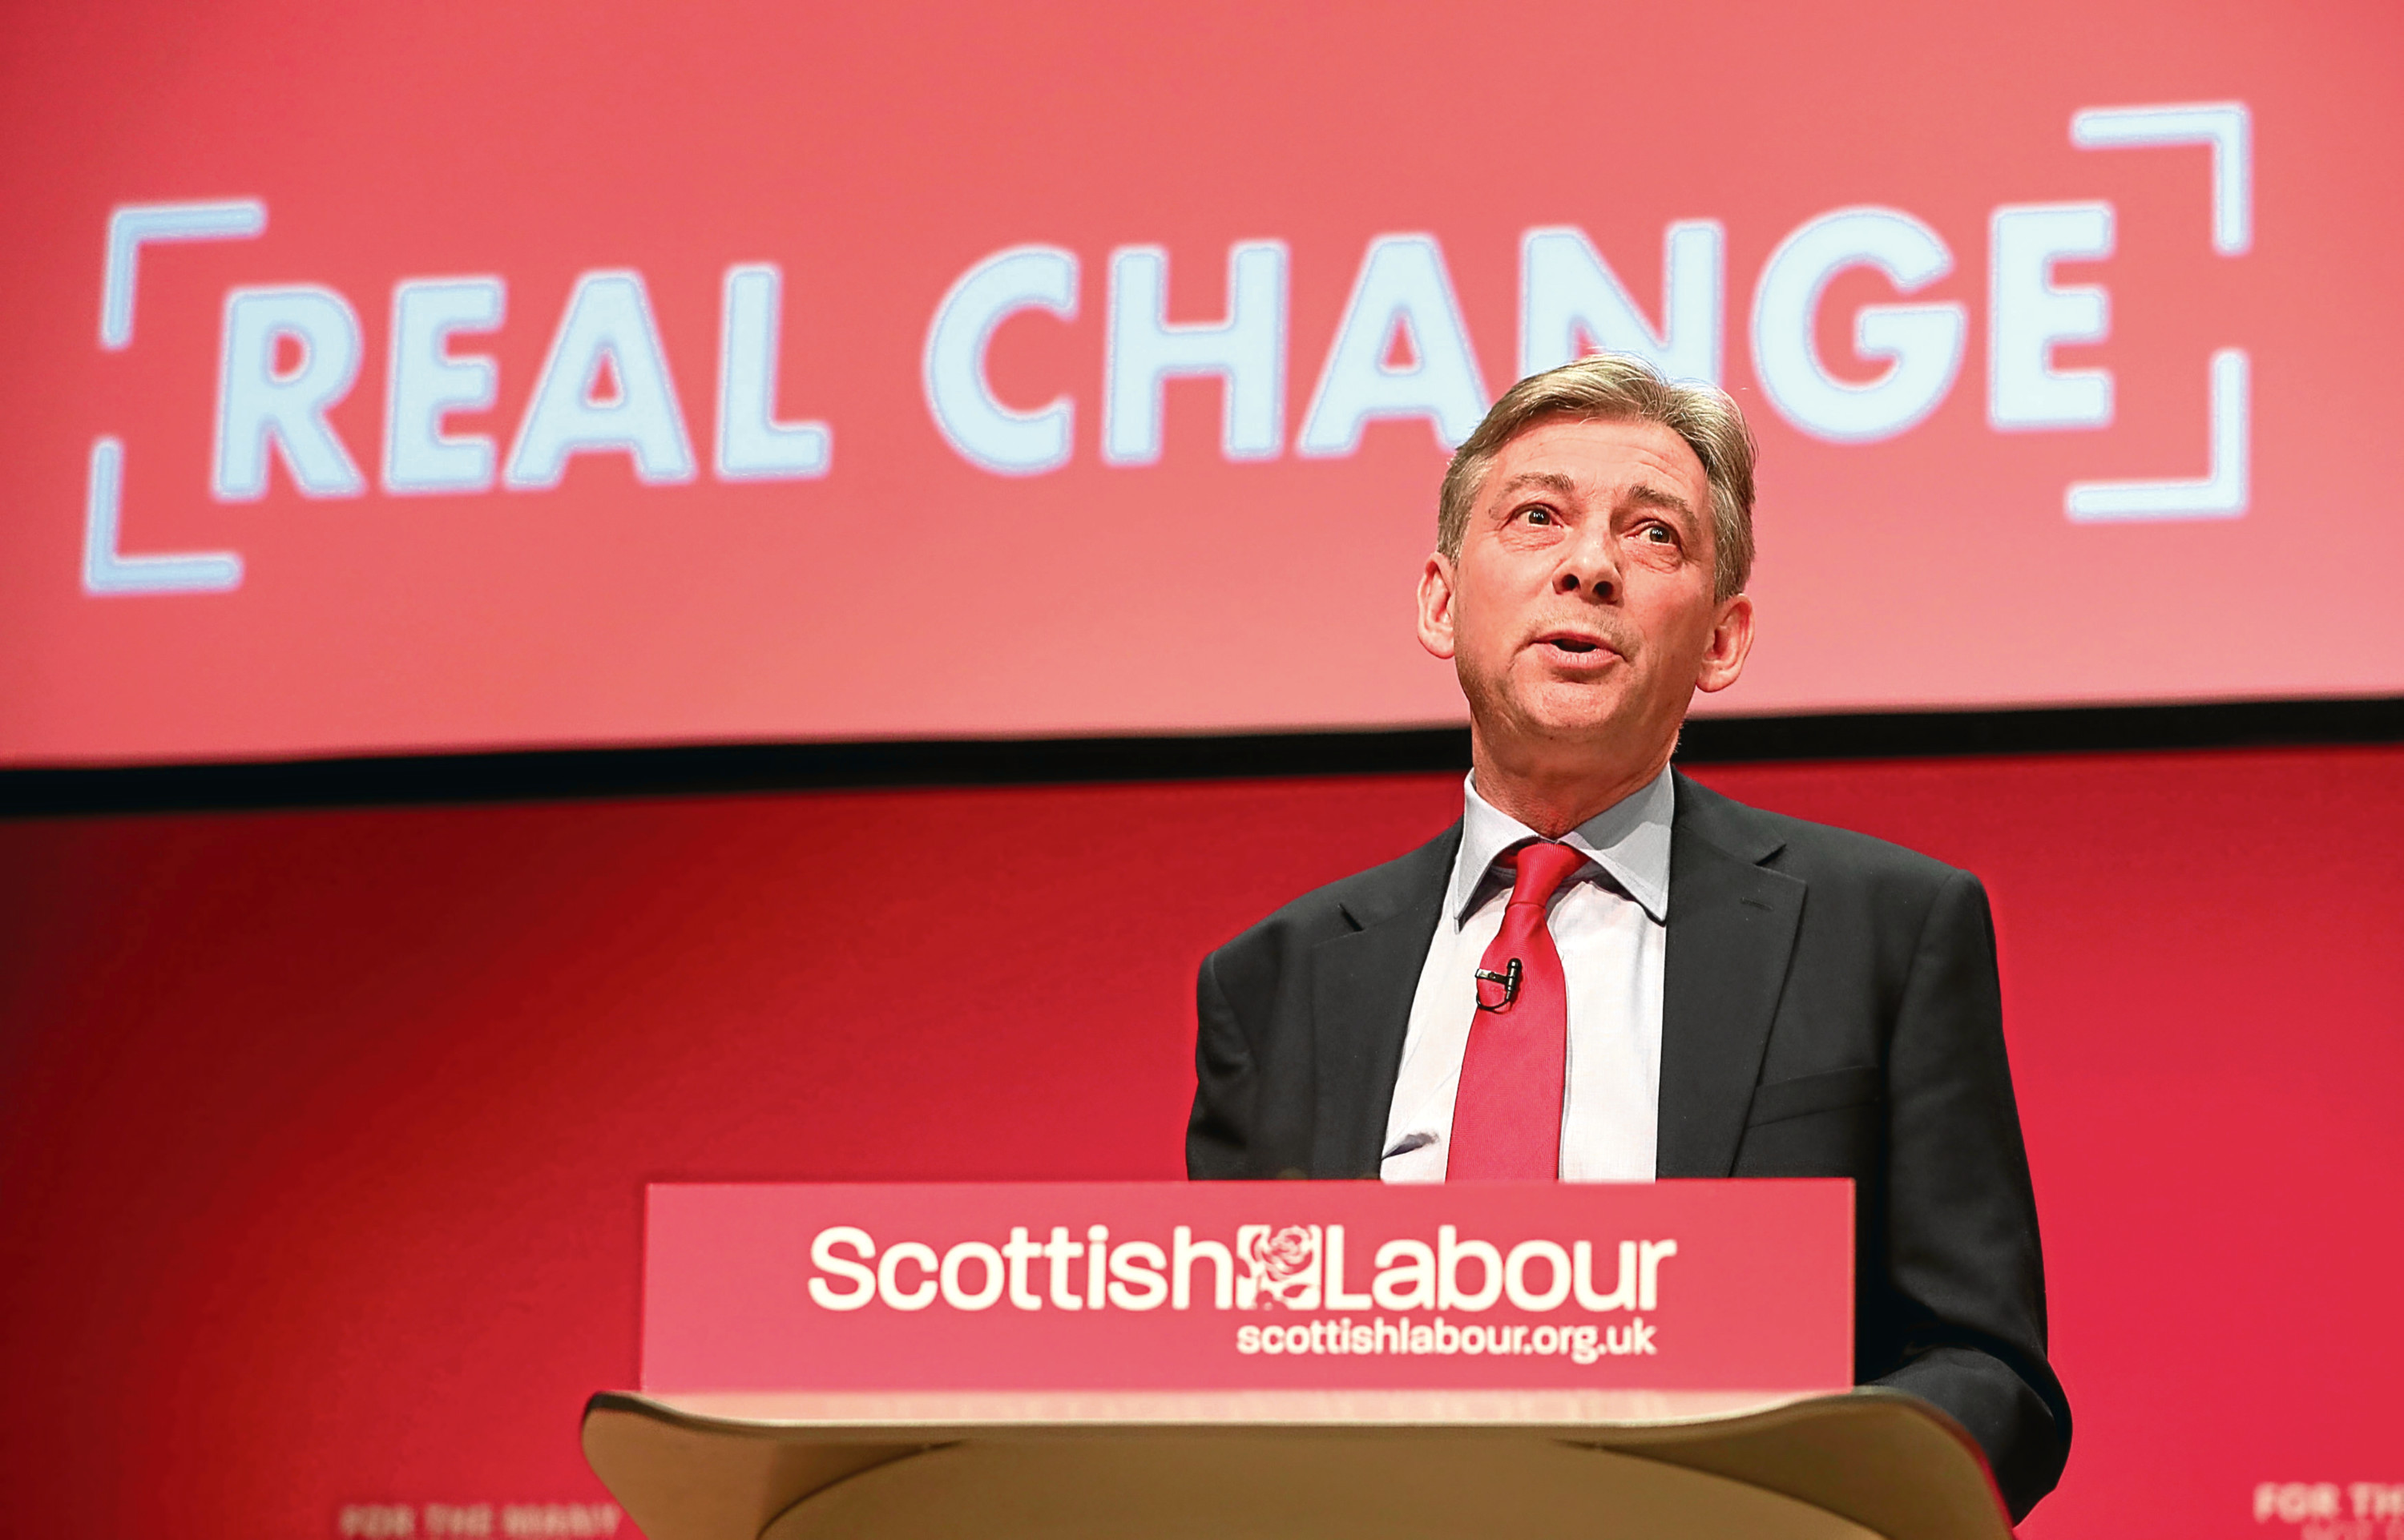 Scottish Labour leader Richard Leonard speaking during the Scottish Labour Conference in Caird Hall, Dundee (Jane Barlow/PA Wire)